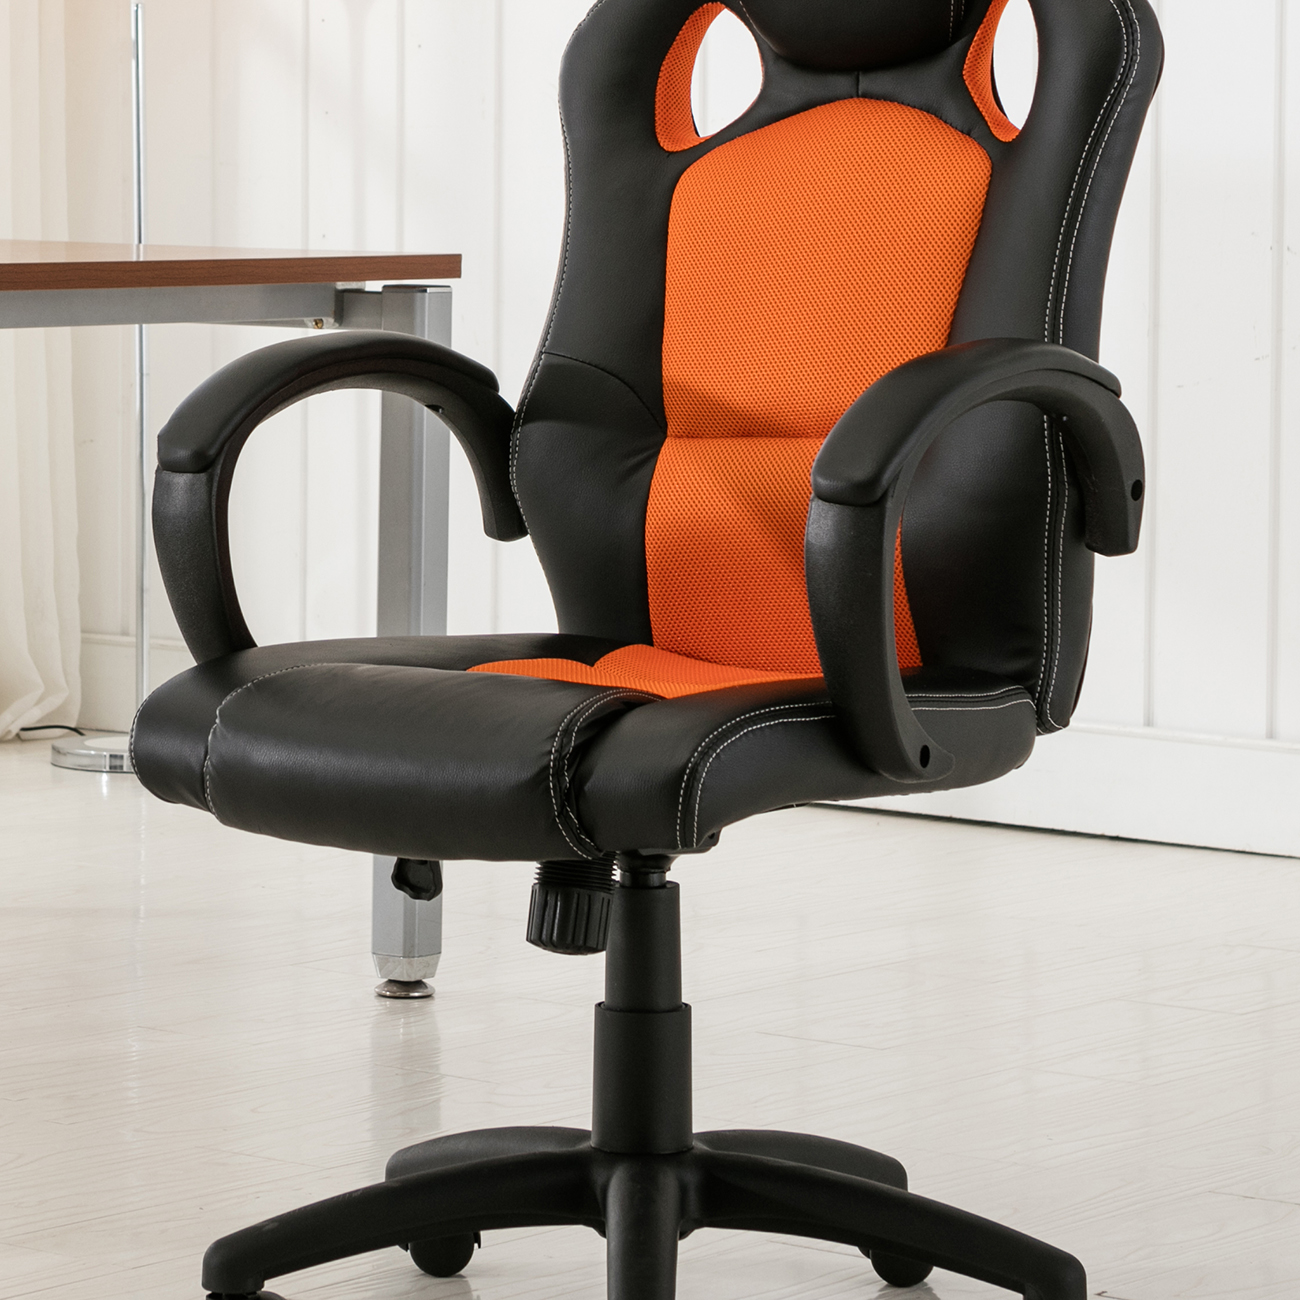 High Back Race Car Style Bucket Seat Office Desk Chair